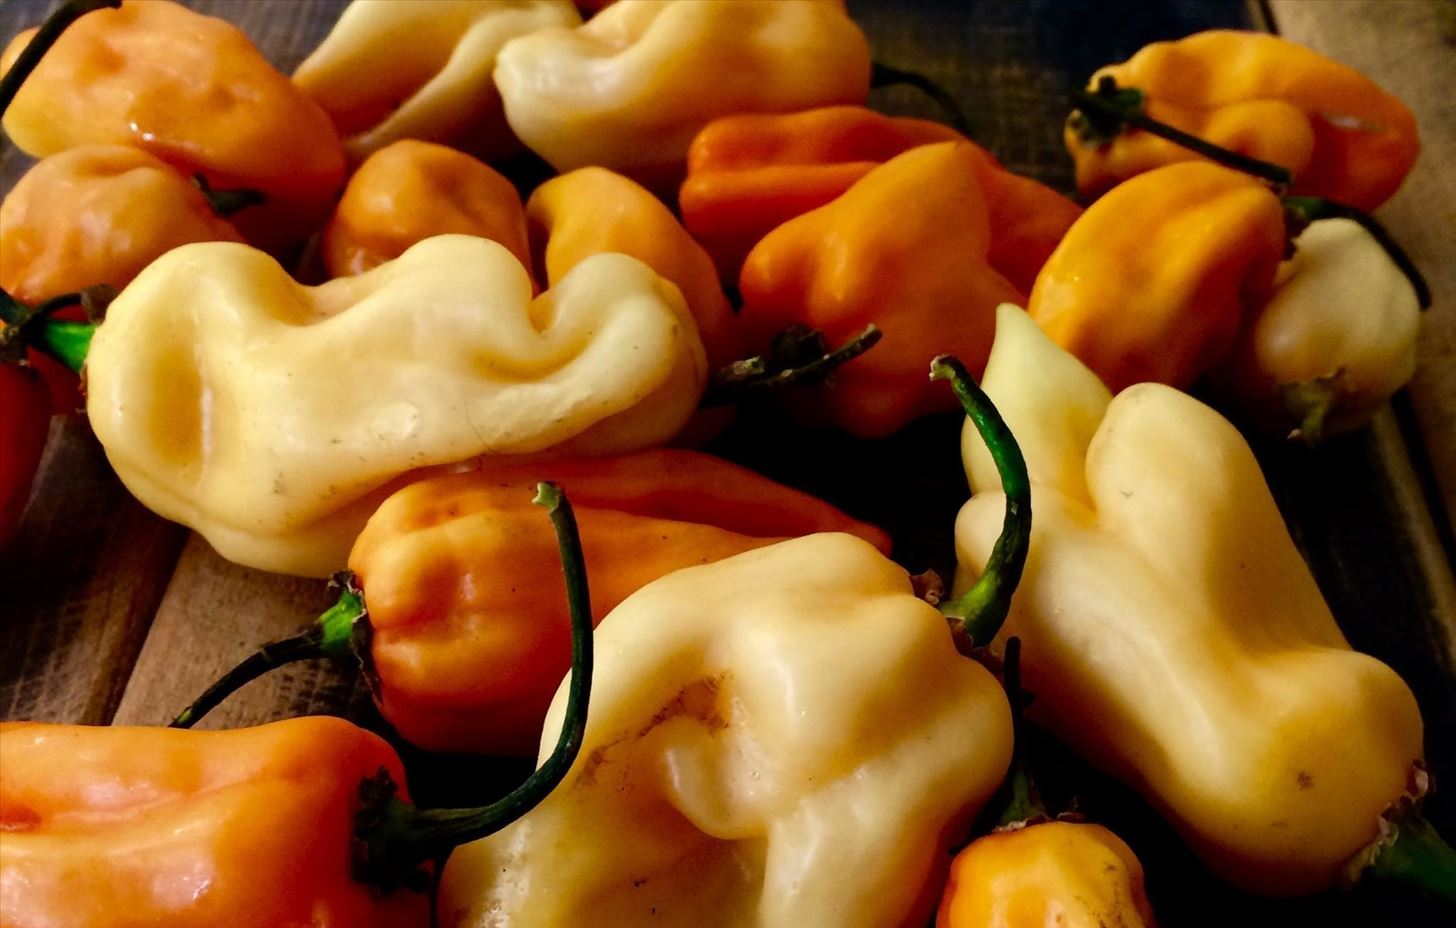 Ingredients 101: The Know-It-All Guide to Peppers